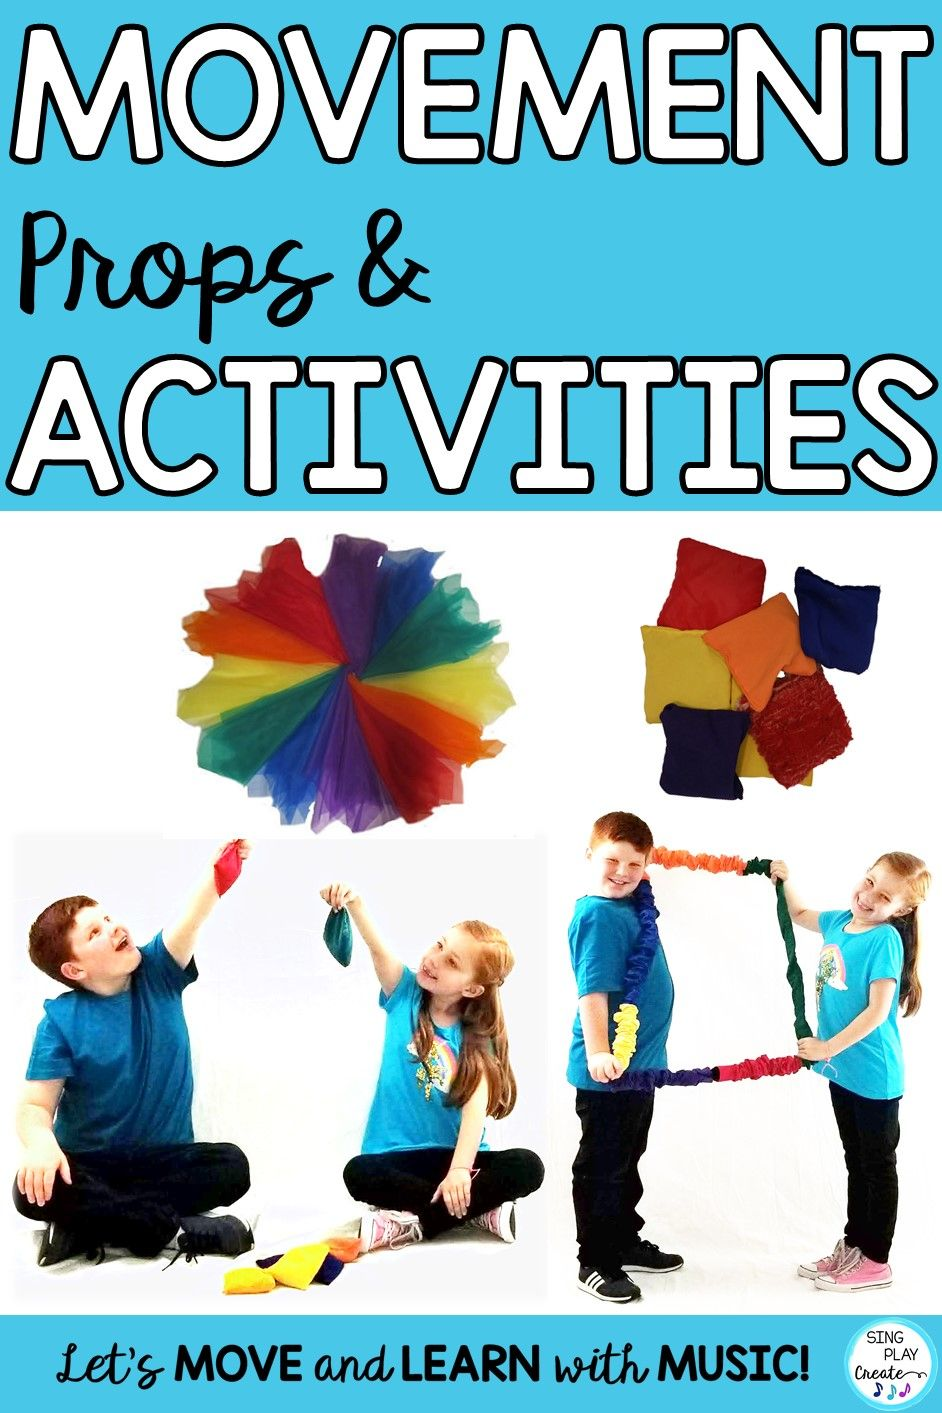 Movement Props And Activities For Music Class Sing Play